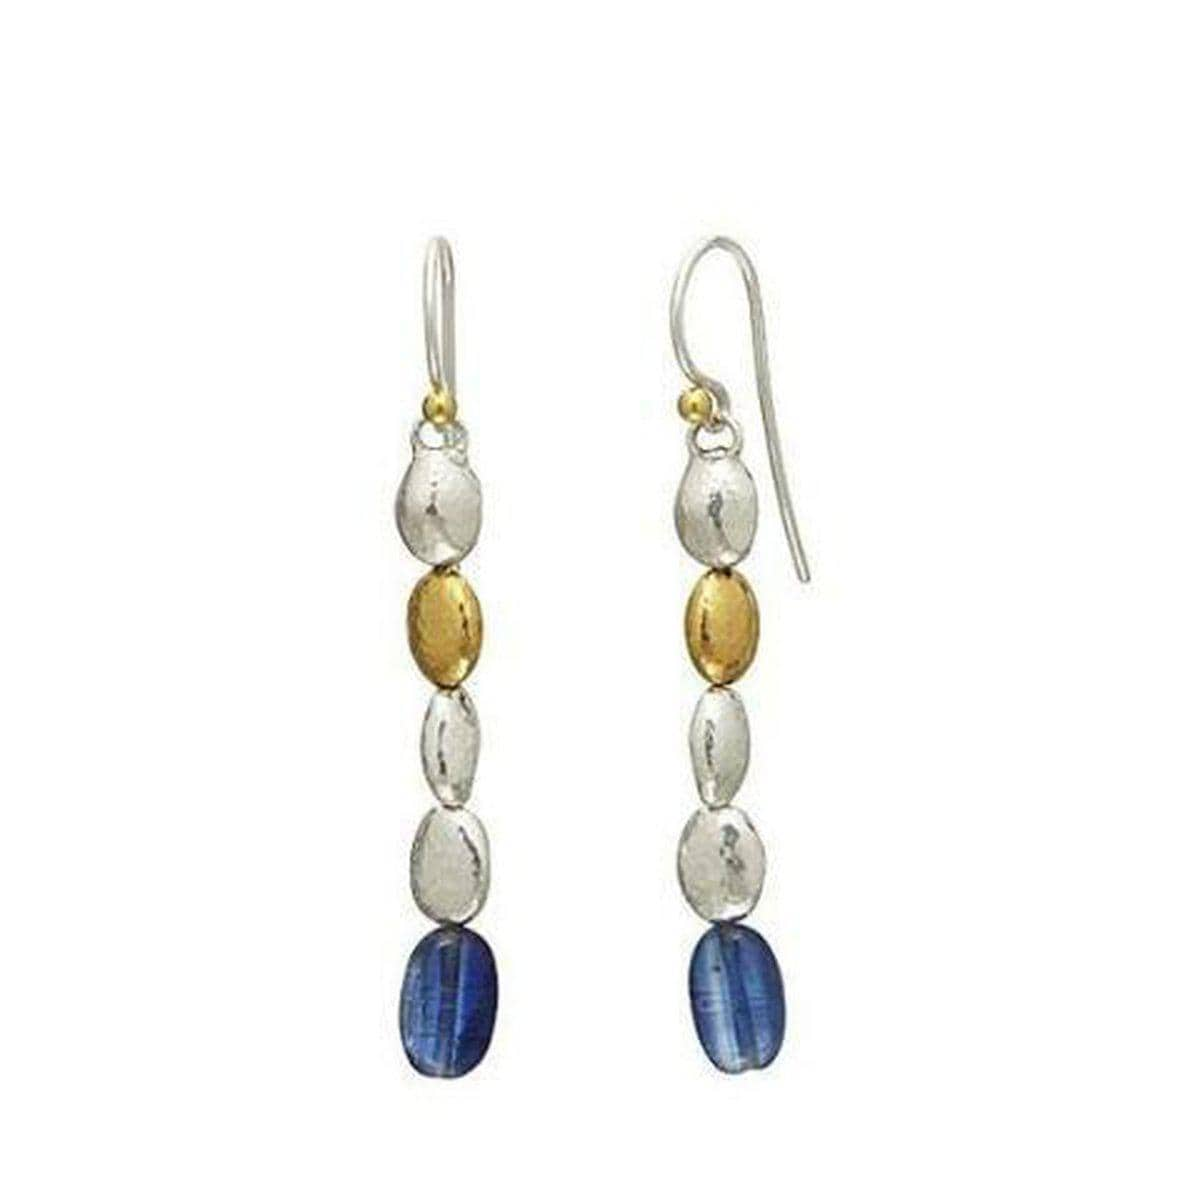 Spell Sterling Silver Kyanite Earrings - EHSSG-NGS-1KYB-1G-5D-GURHAN-Renee Taylor Gallery